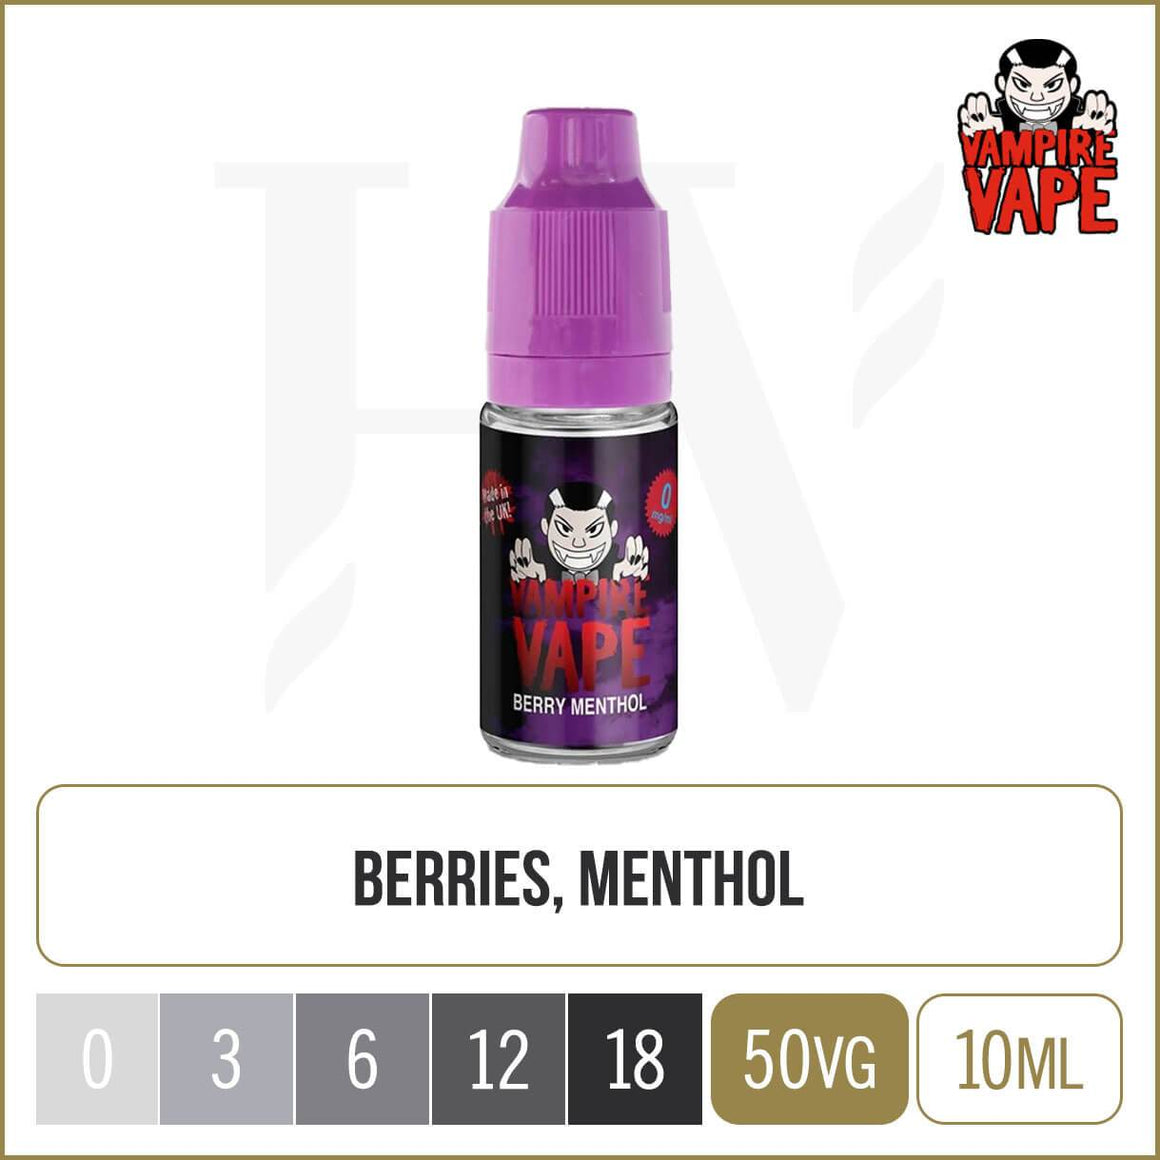 Vampire Vape berry menthol e liquid 10ml